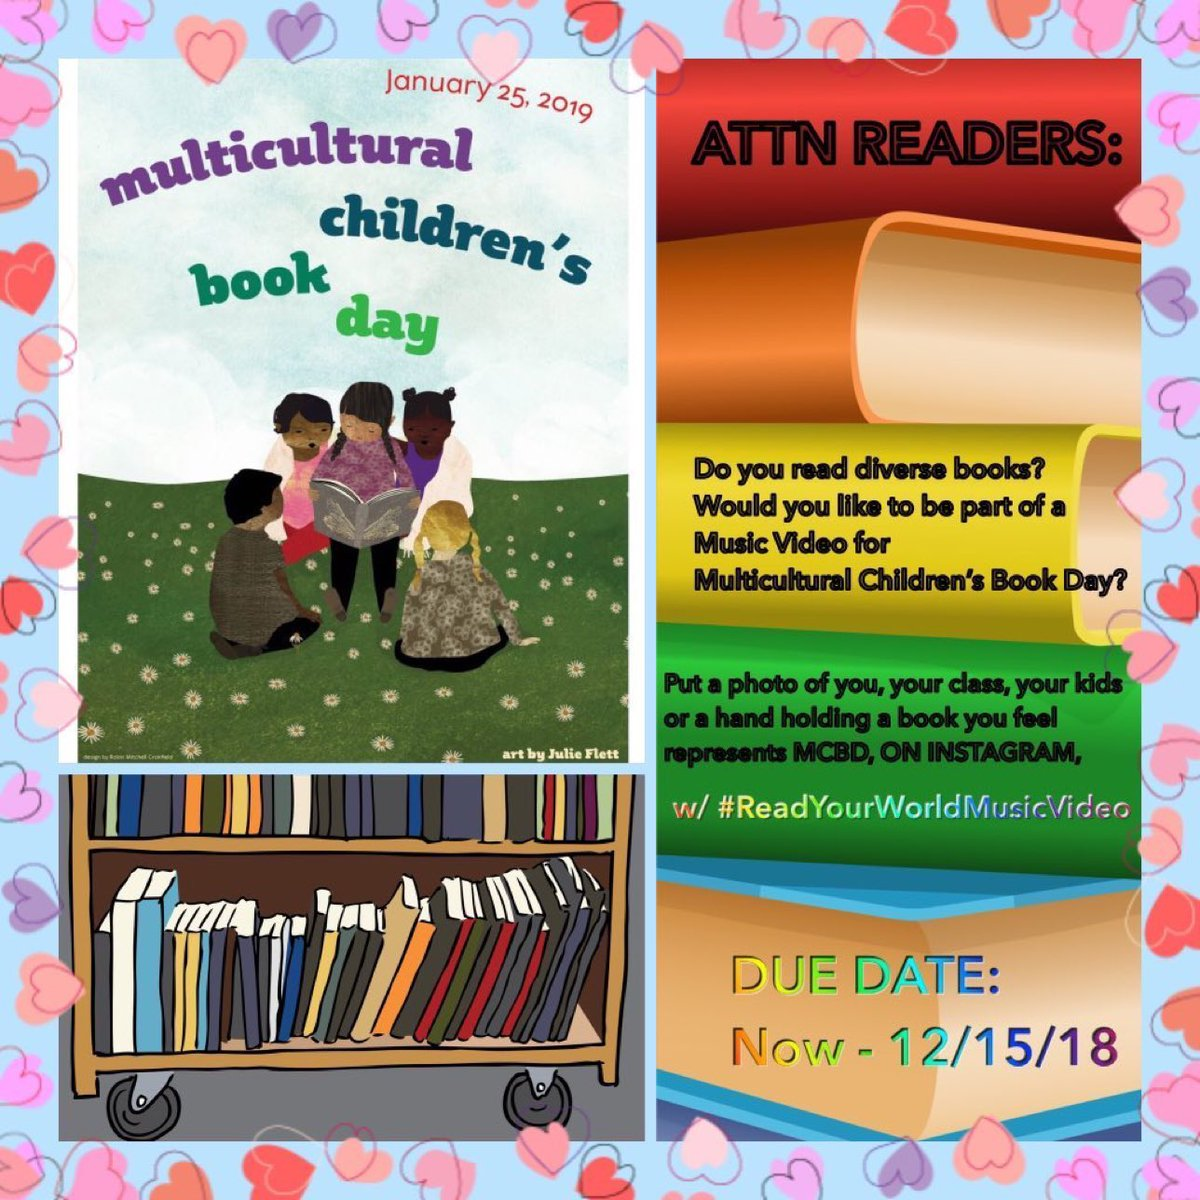 DO YOU WANT TO BE IN THE MUSIC VIDEO? Post a pic w/a multicultural book on Instagram (or here if you need to) using #ReadYourWorldMusicVideo    Video portion made by @pragmaticmom #Kidlit #kidlitart #MCBD2019 #ReadYourWorld @valariebudayr_<br>http://pic.twitter.com/08B1zO3S2l